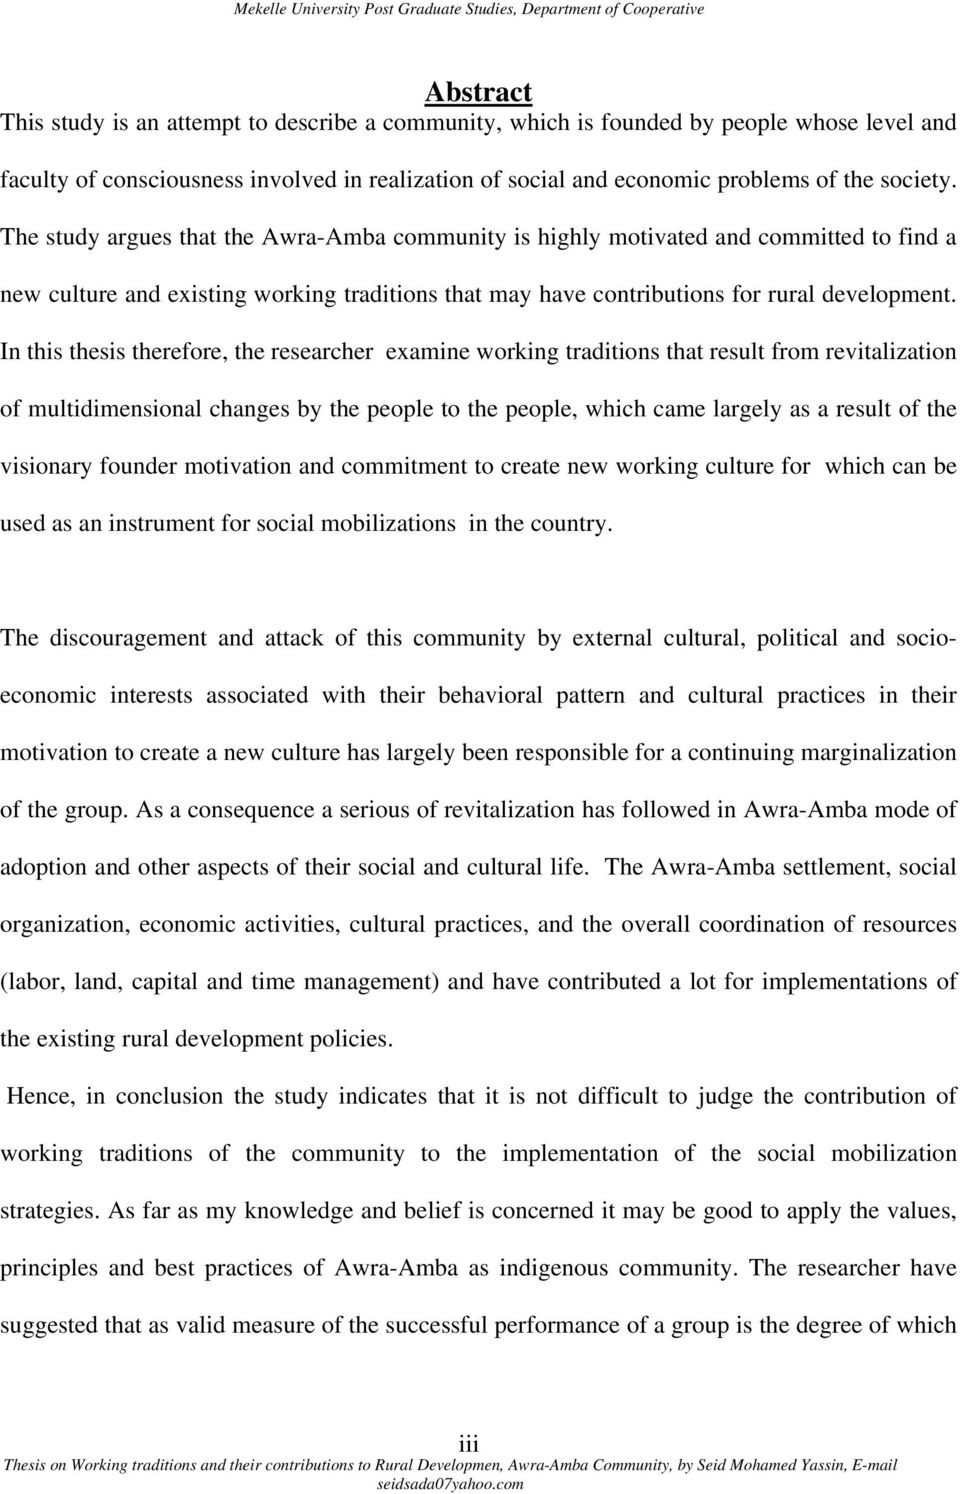 In this thesis therefore, the researcher examine working traditions that result from revitalization of multidimensional changes by the people to the people, which came largely as a result of the